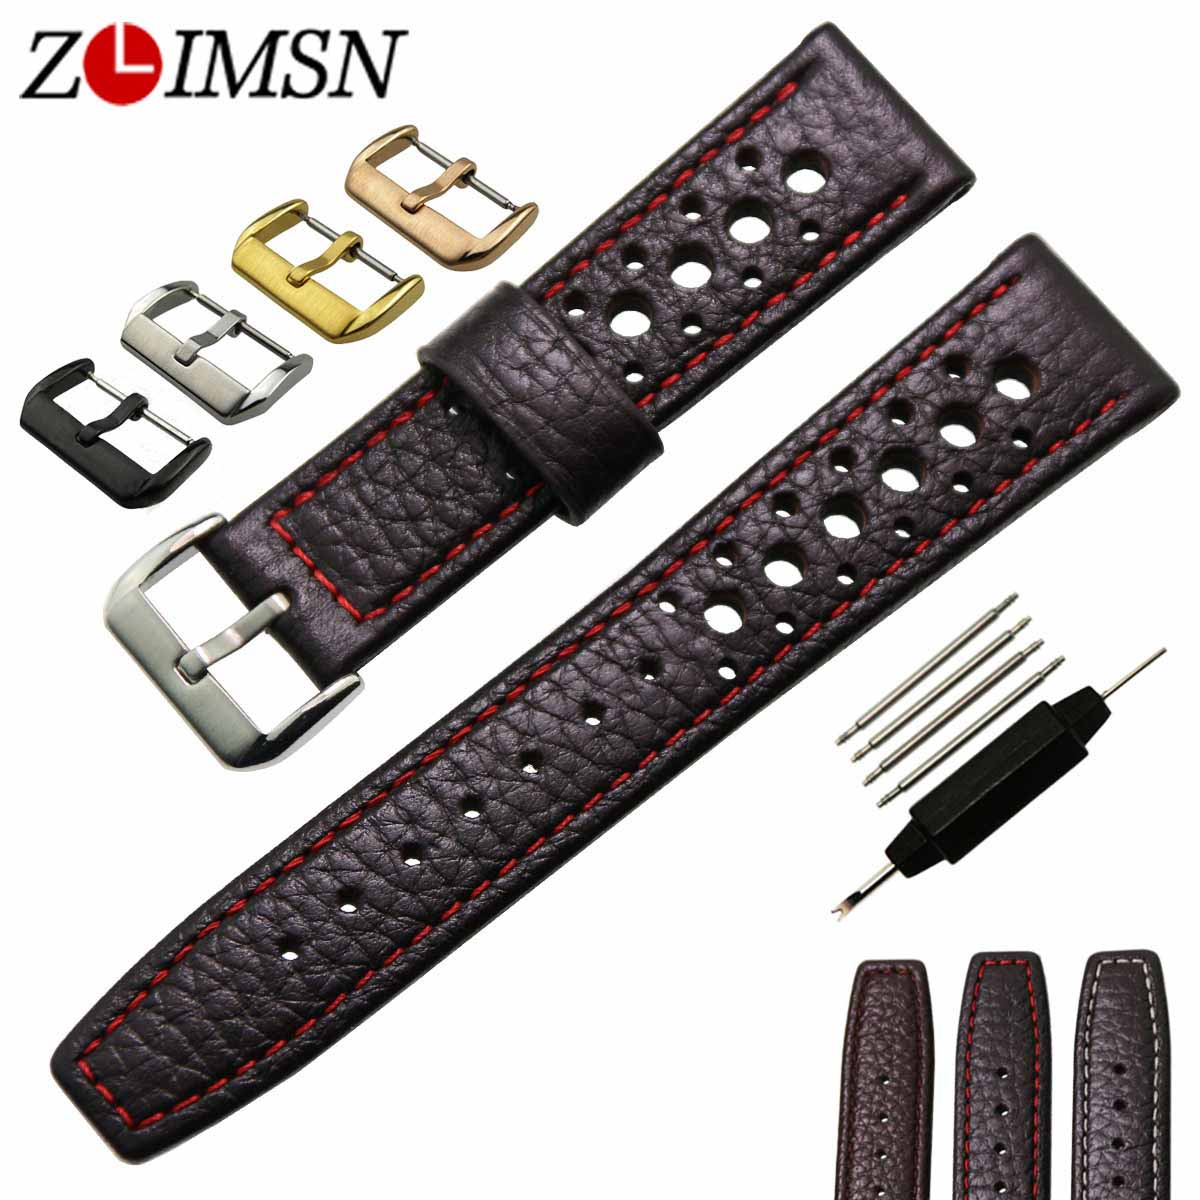 ZLIMSN Mens Genuine Leather Watchbands Watch Band Bands Dark Brown Strap Brand Belt Stainless Steel Buckle 20mm 22mm business men tie shallow mouth brown leather casual rivet shoes men s shoes round youth non slip rubber sole